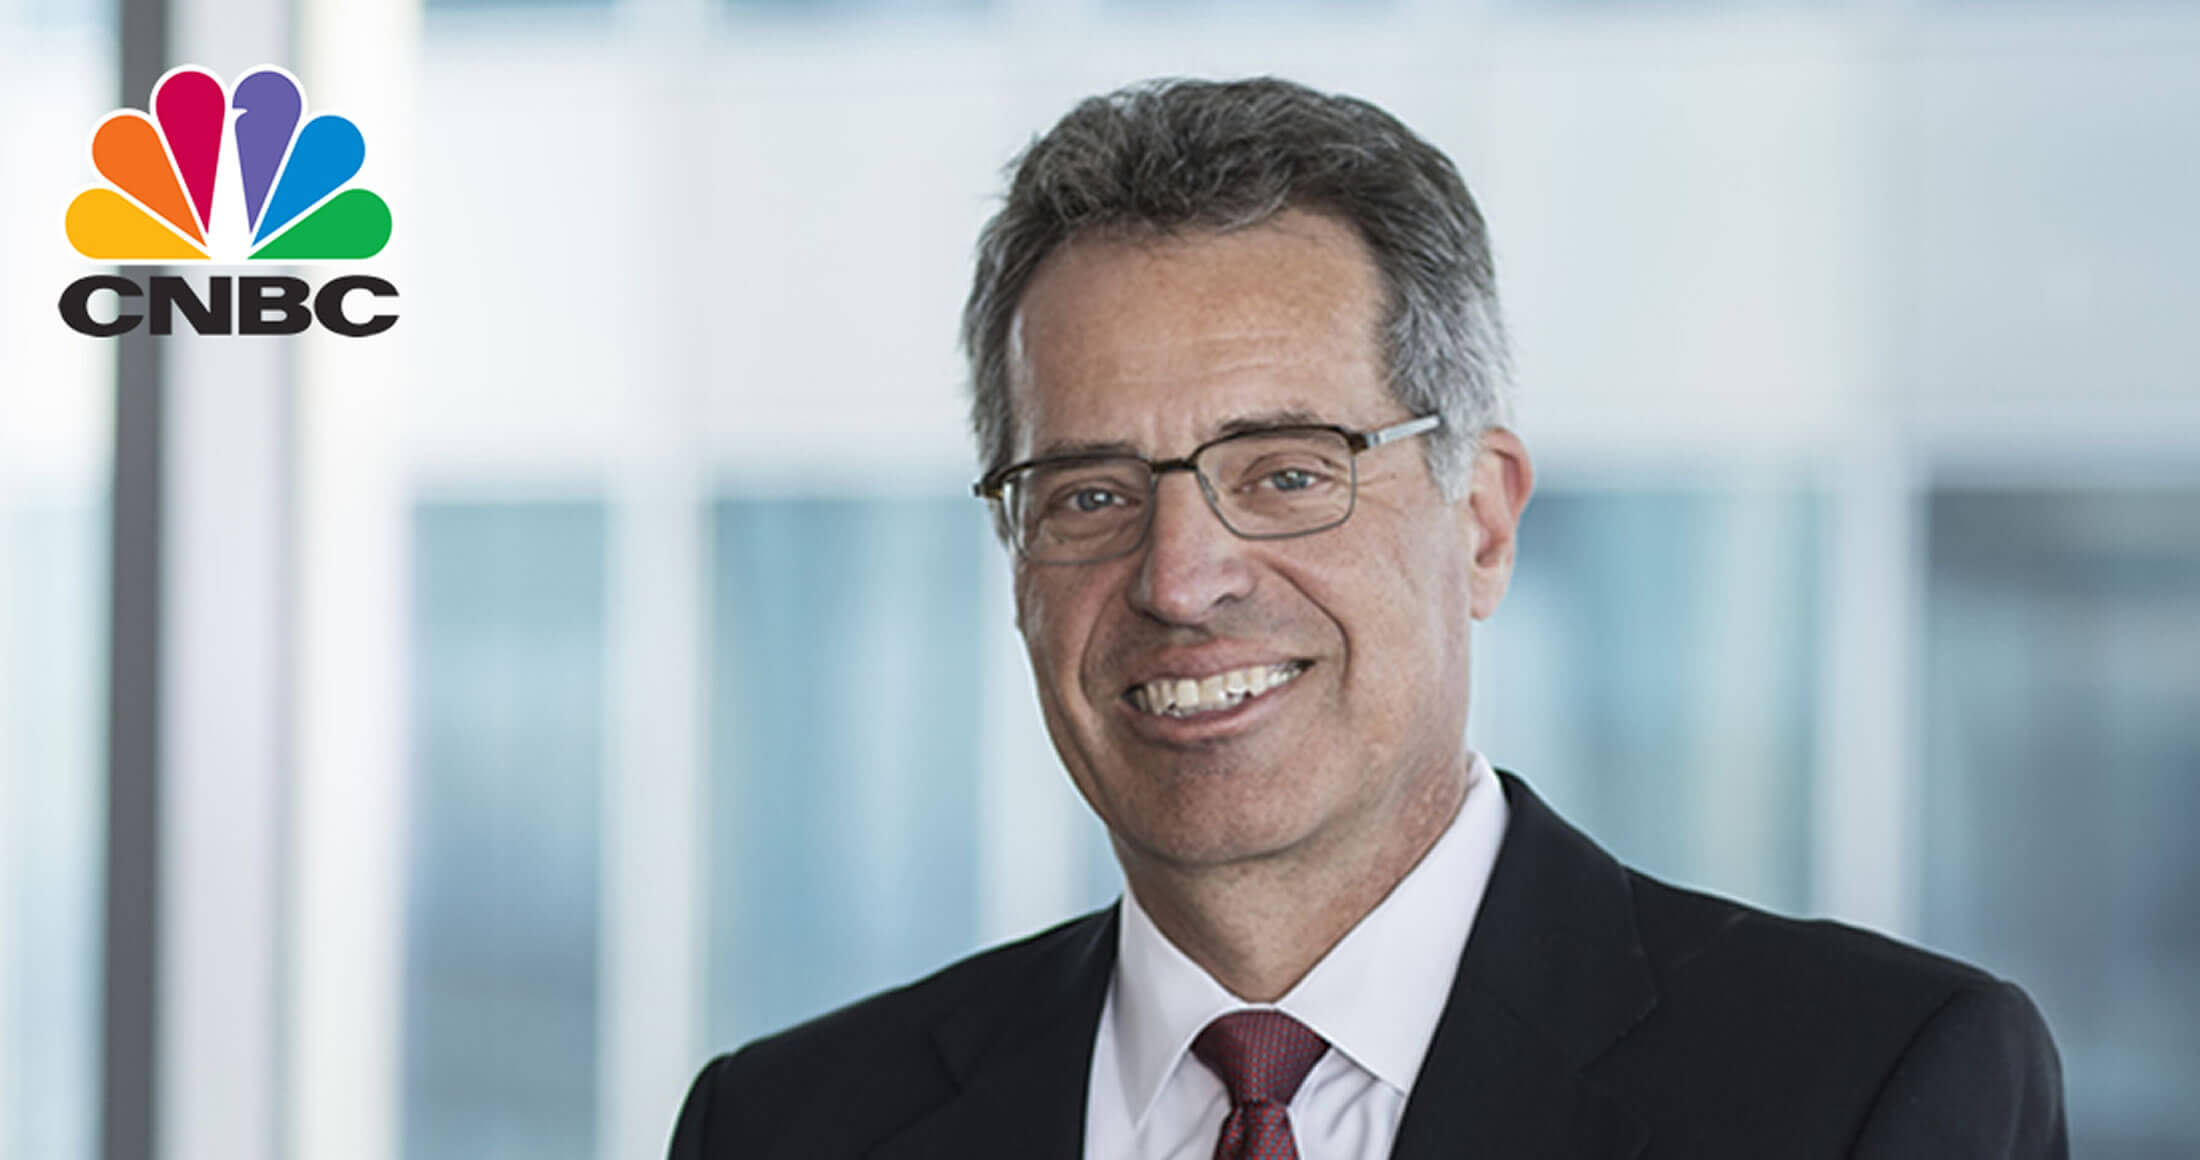 Bill Nygren- Portfolio Manager- CNBC headshot